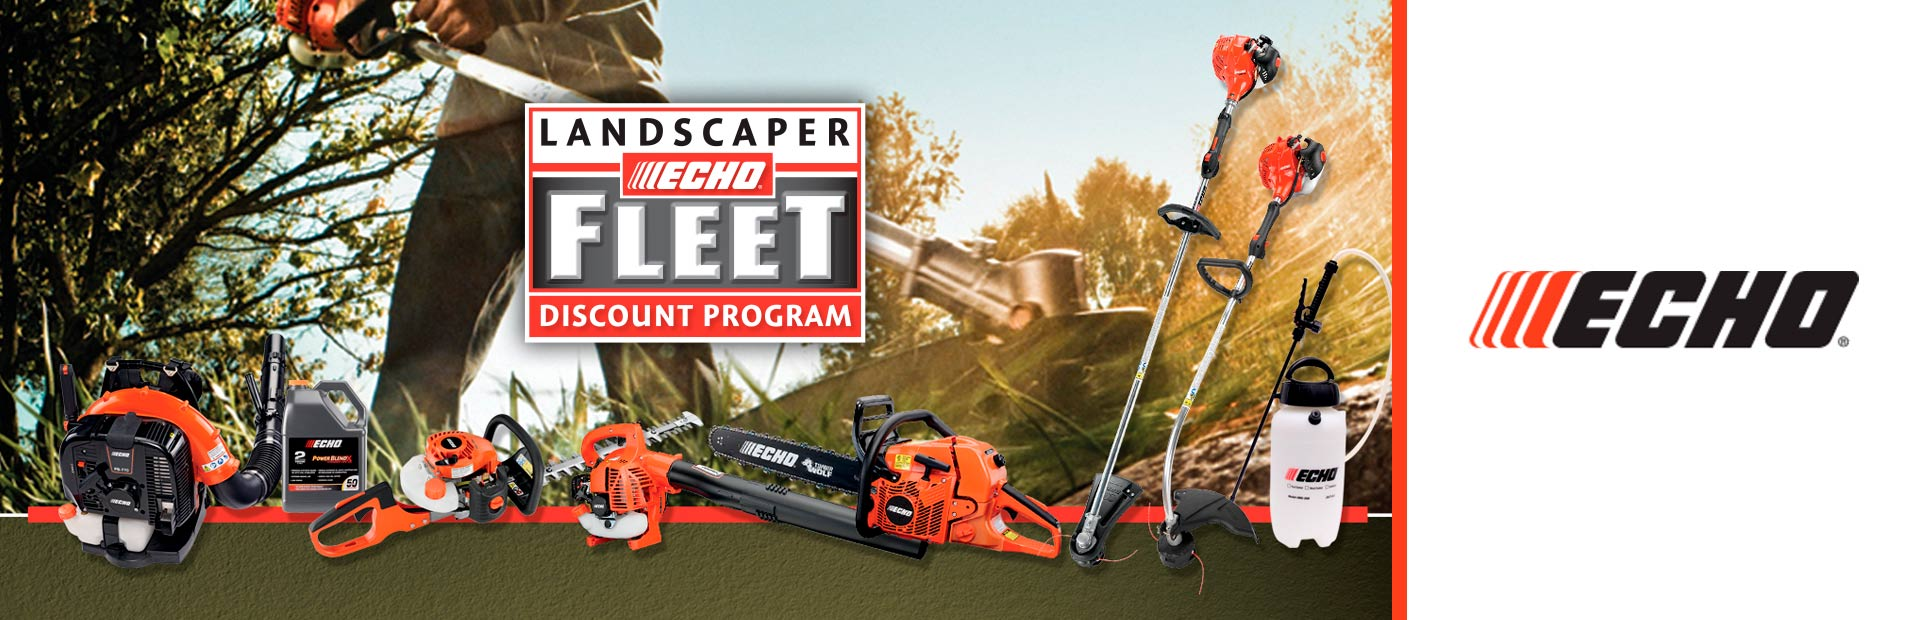 ECHO: Landscaper Echo Freet Discount Program